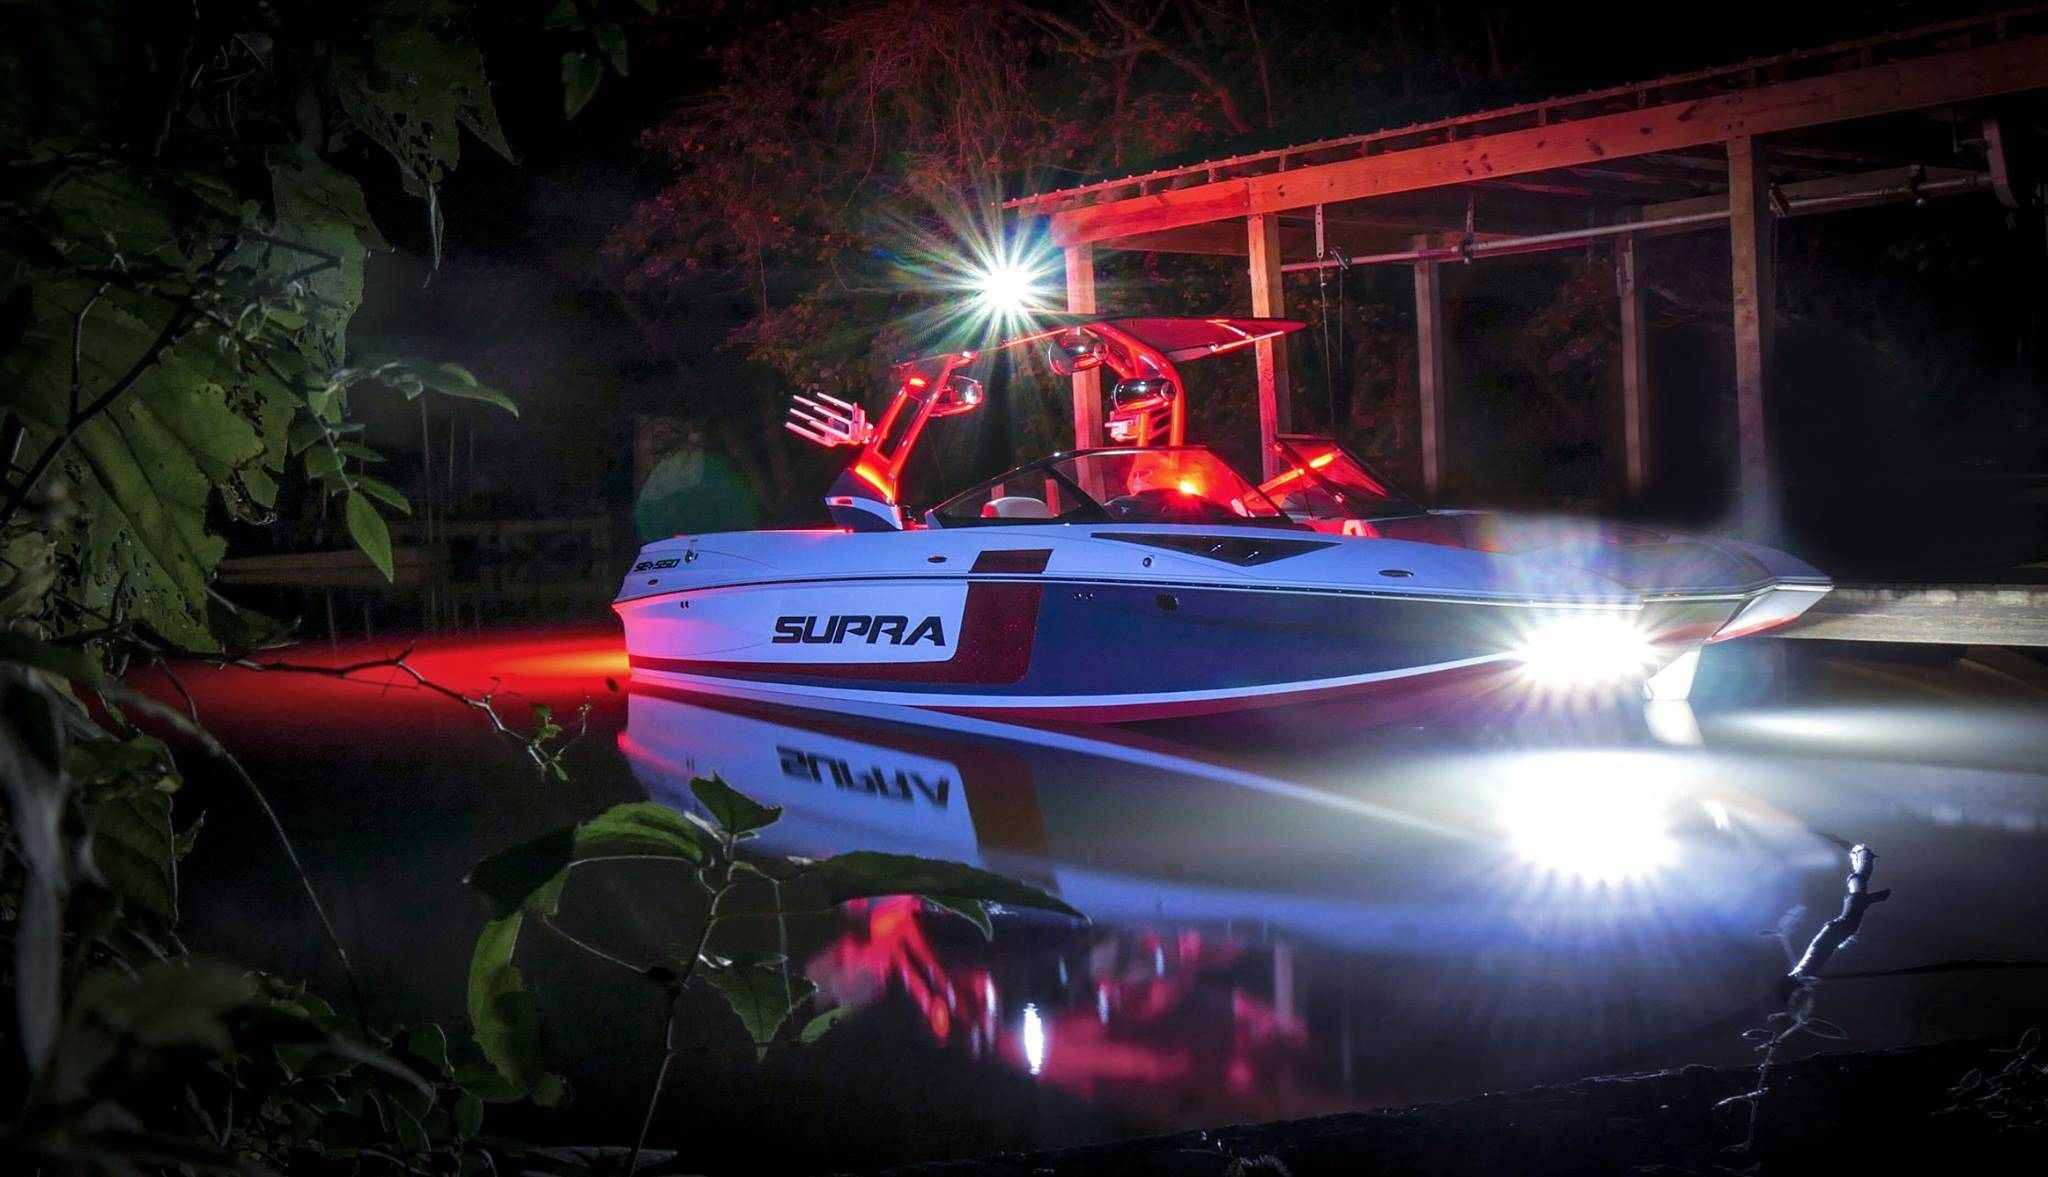 Supra Boats Reveal Roush Powered Super Boat With Raptor